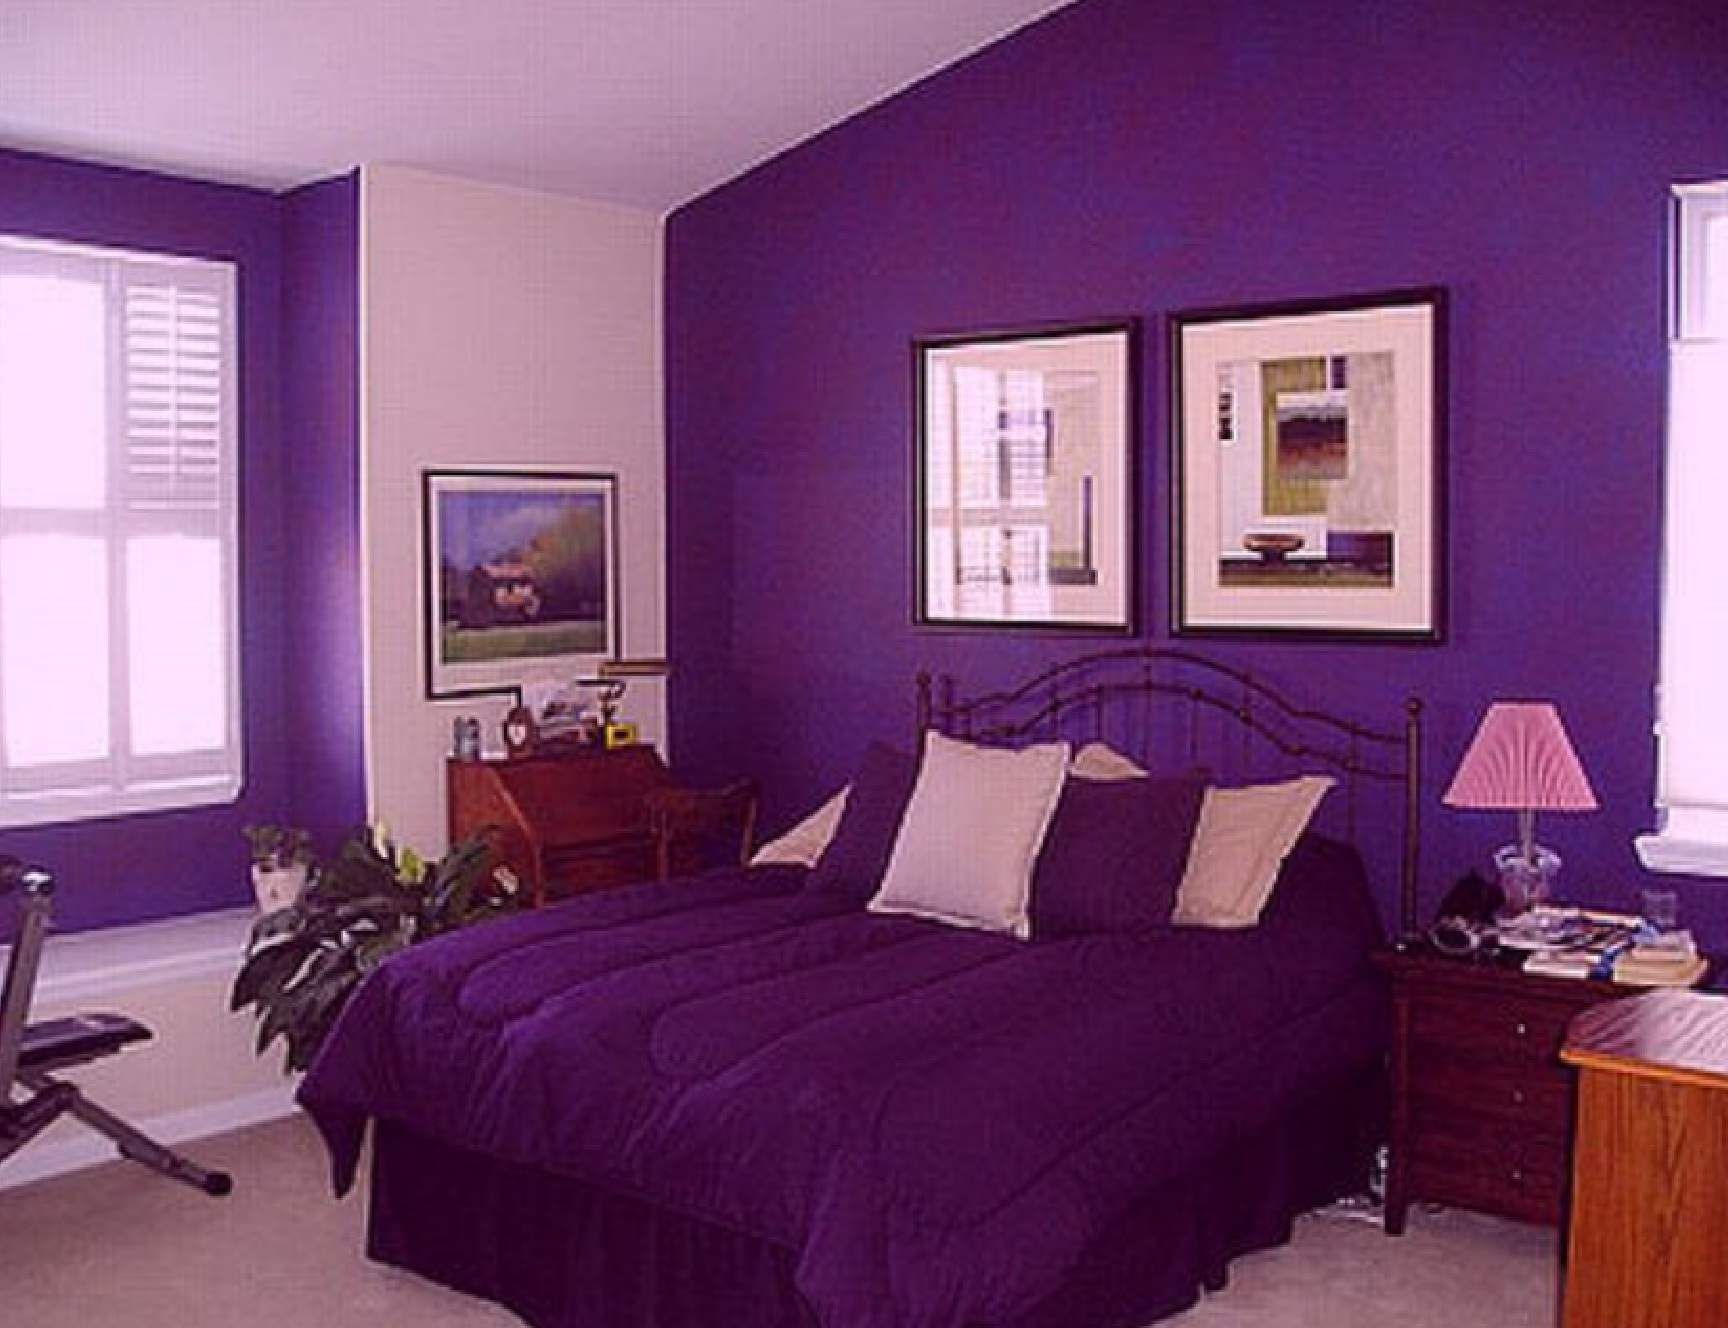 Violet bedroom color ideas - Room Purple Bed Room Ideas